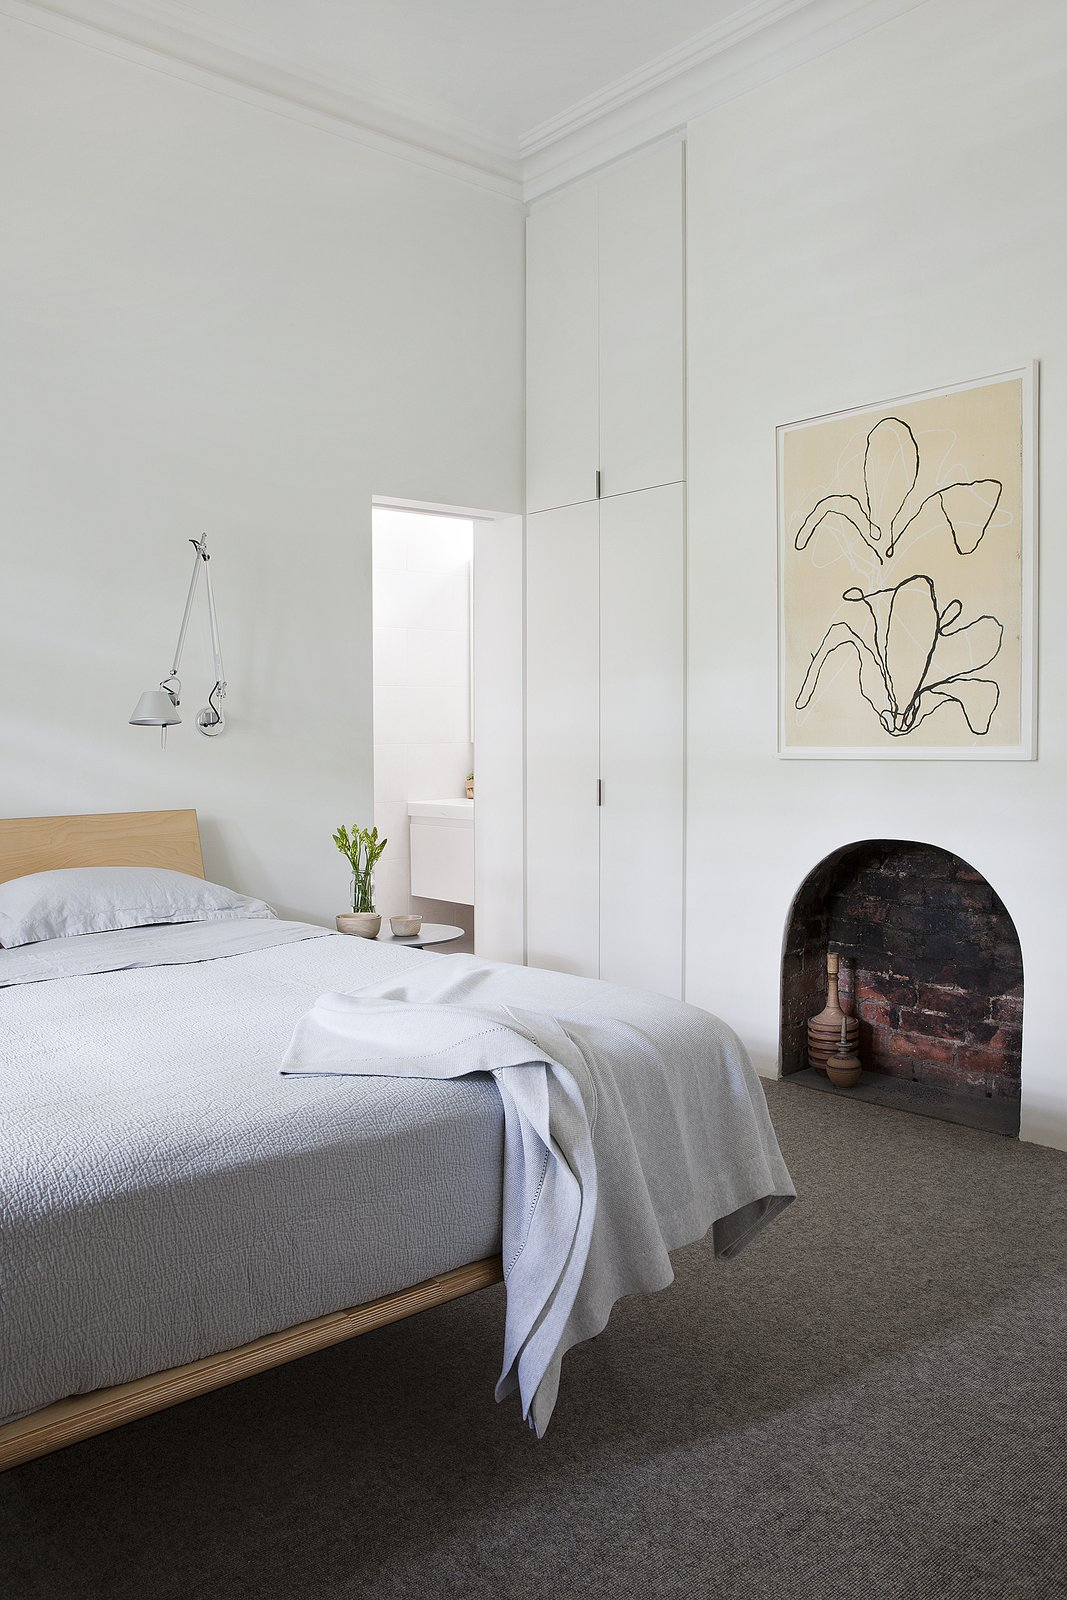 """""""[W]e didn't need a huge space for our clients to live in harmony, it just needed to be a well thought out space,"""" says the architects. A V Leg Bed by George Nelson is a classic addition to the bedroom, along with Tolomeo wall mounted luminaires from Artermide. The artwork is from David Band. Tagged: Bedroom, Bed, Wall Lighting, and Carpet Floor.  Our Favorite Bedrooms from Seclusion"""